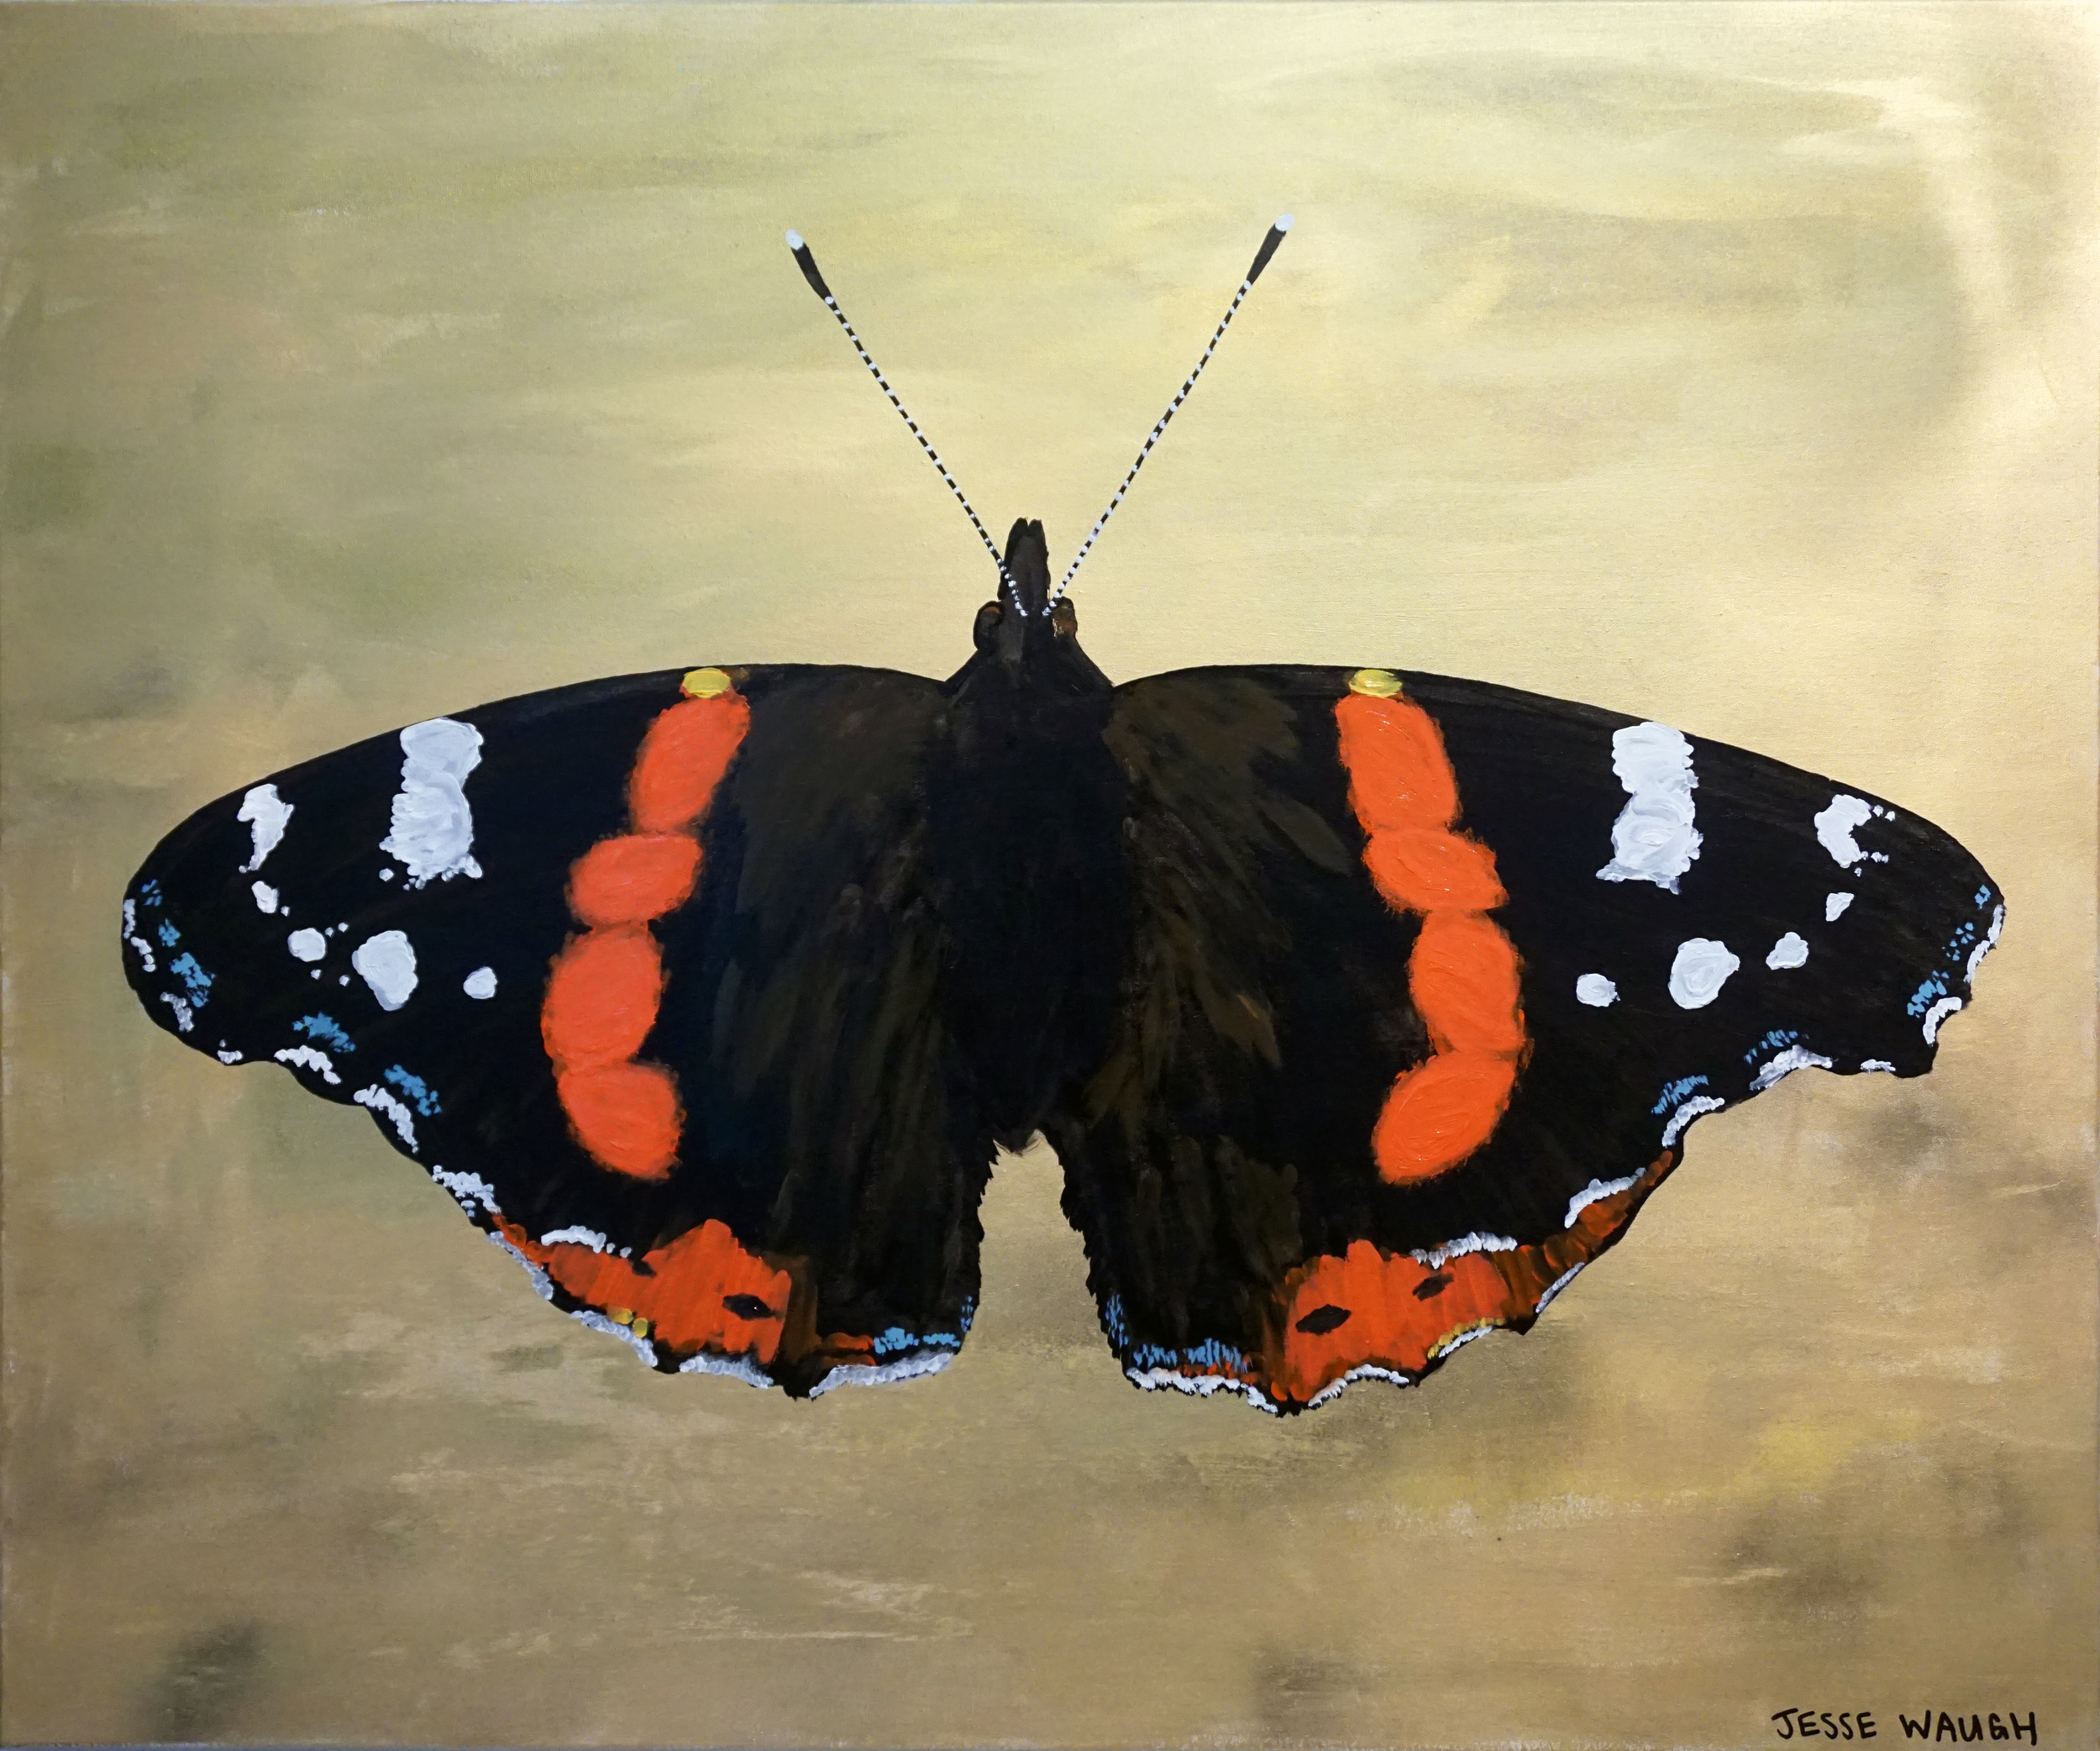 Jesse Waugh   Brighton Butterfly: Red Admiral   Butterfly 1 2014 Oil on canvas 100 X 120 cm